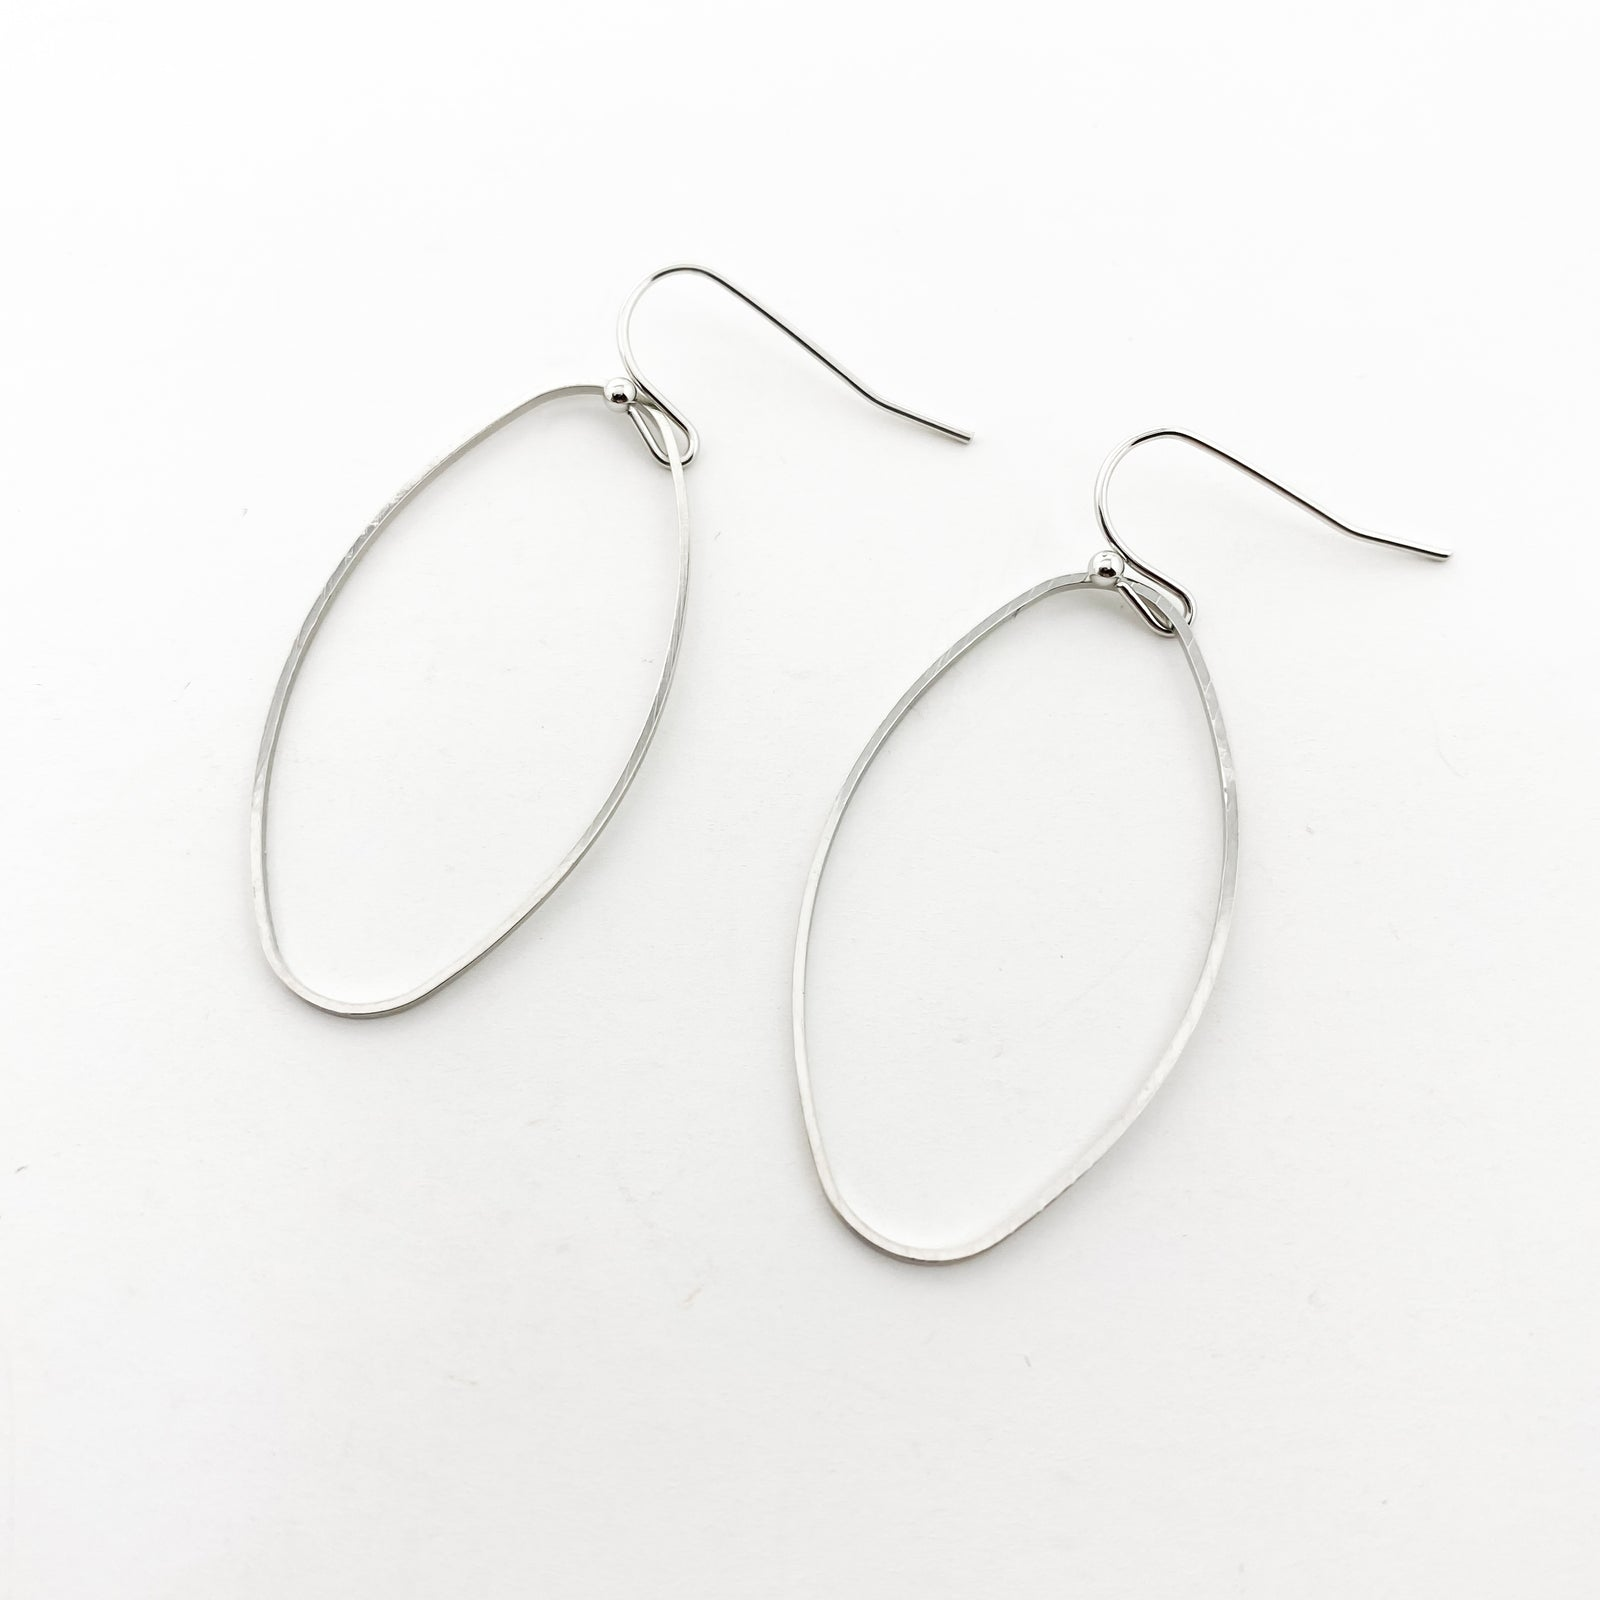 SILVER UNIQUE OVAL EARRINGS